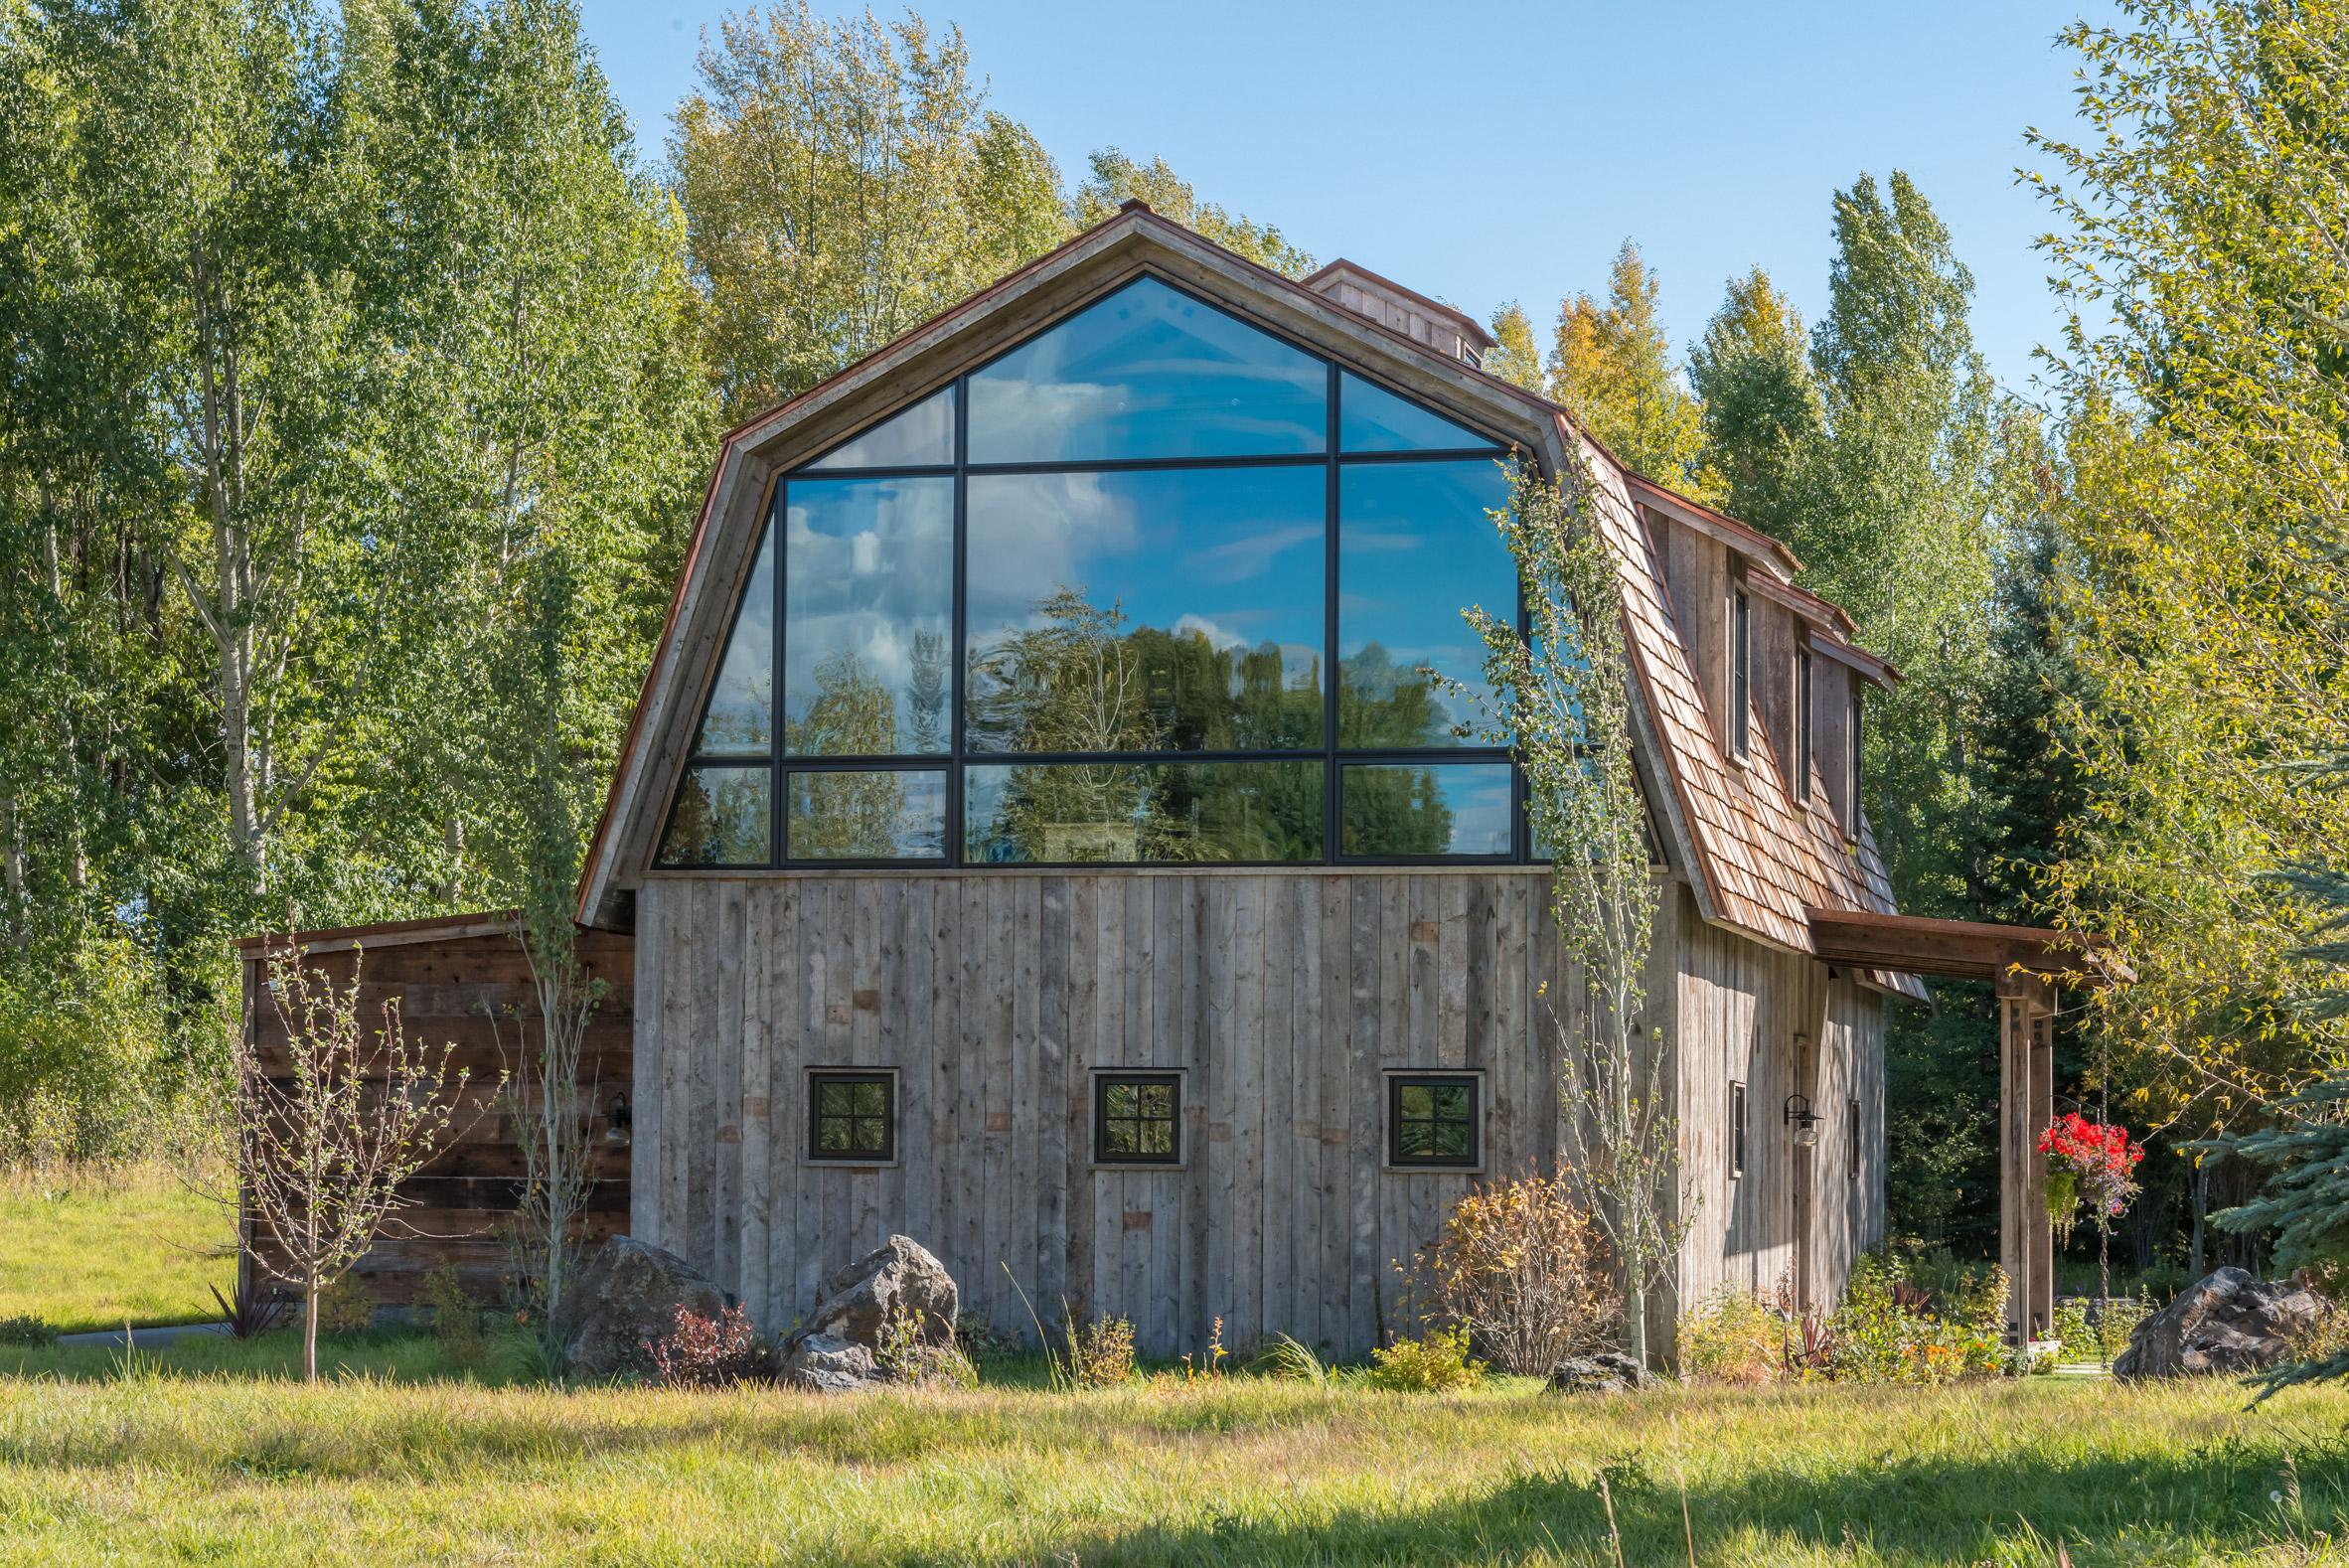 The Barn by Carney Logan Architects